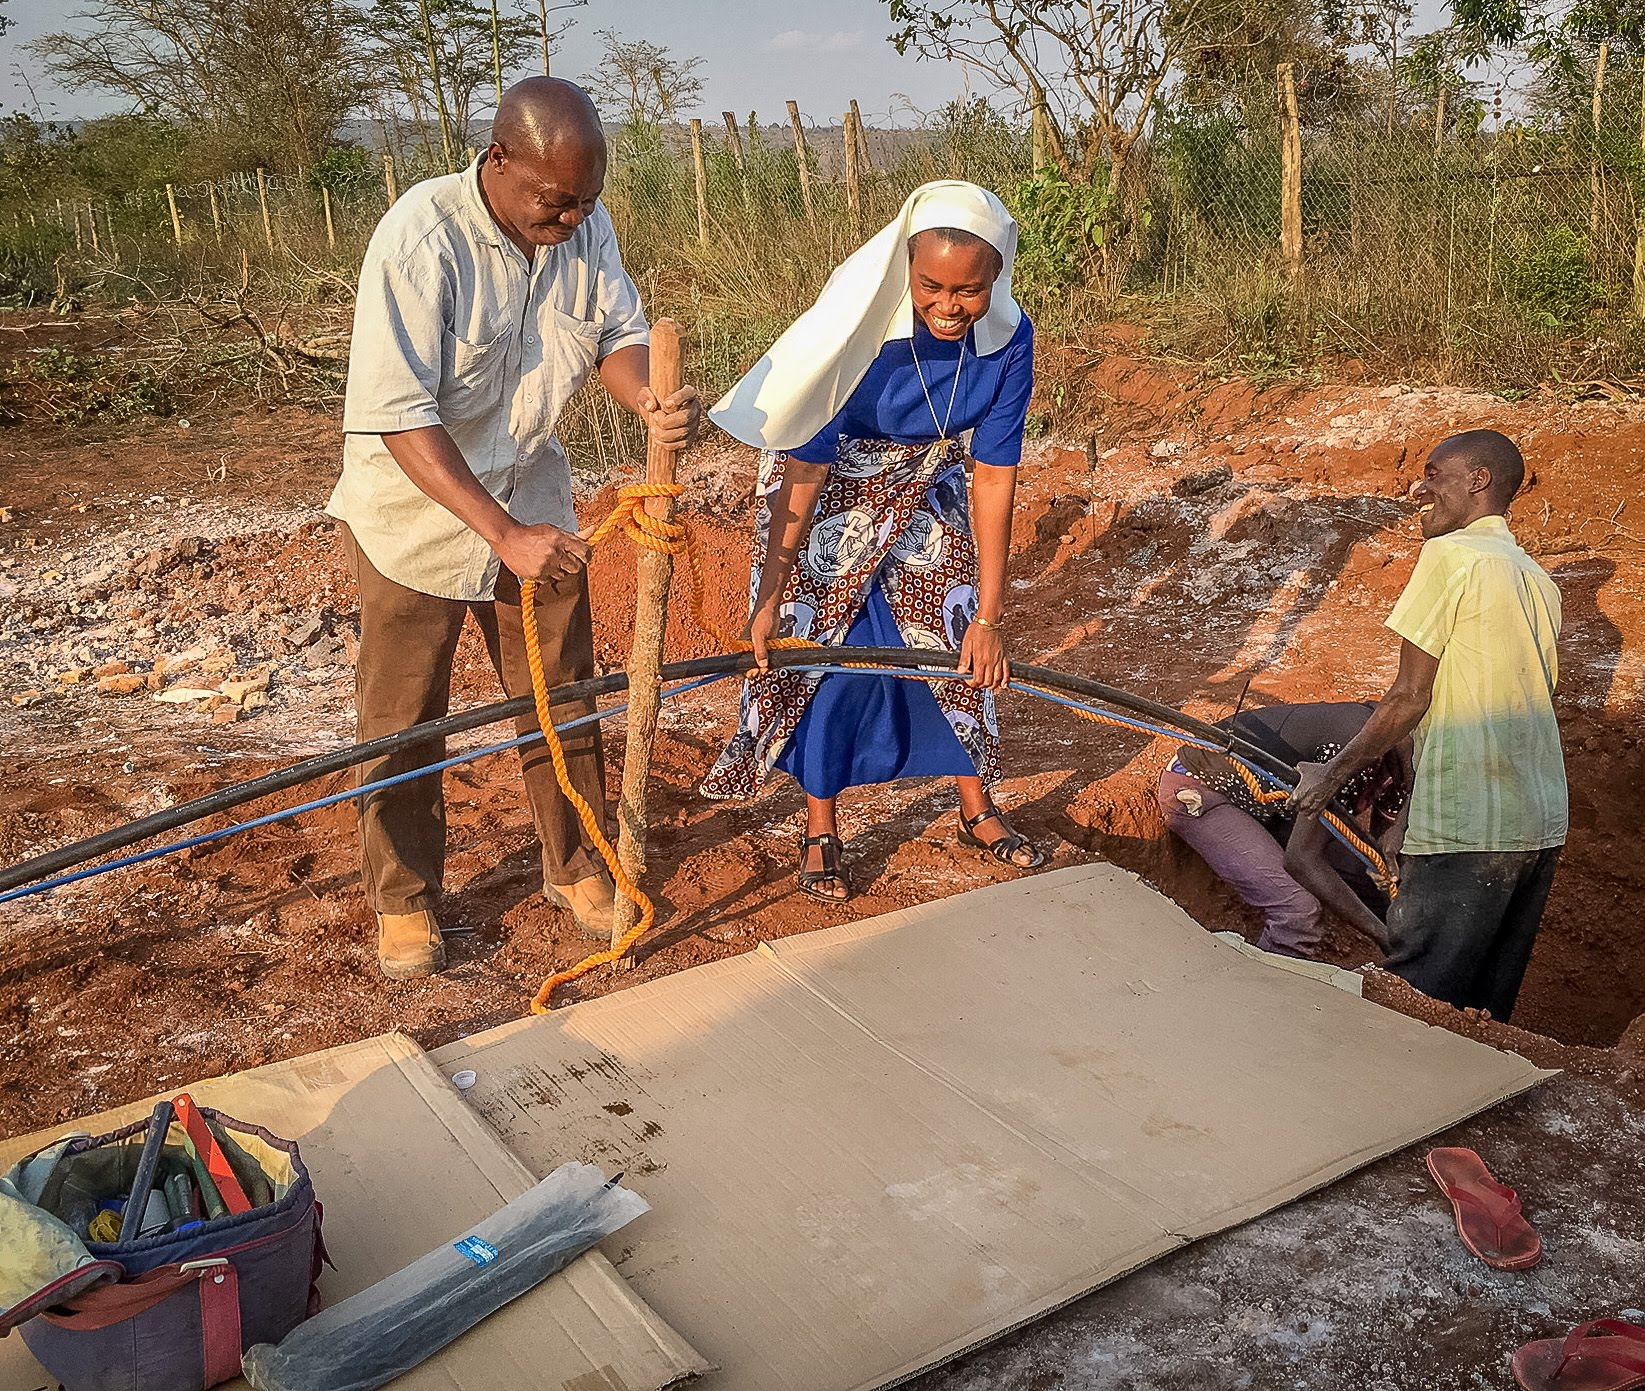 Sr. Dativa and others help send the pump down to the well.